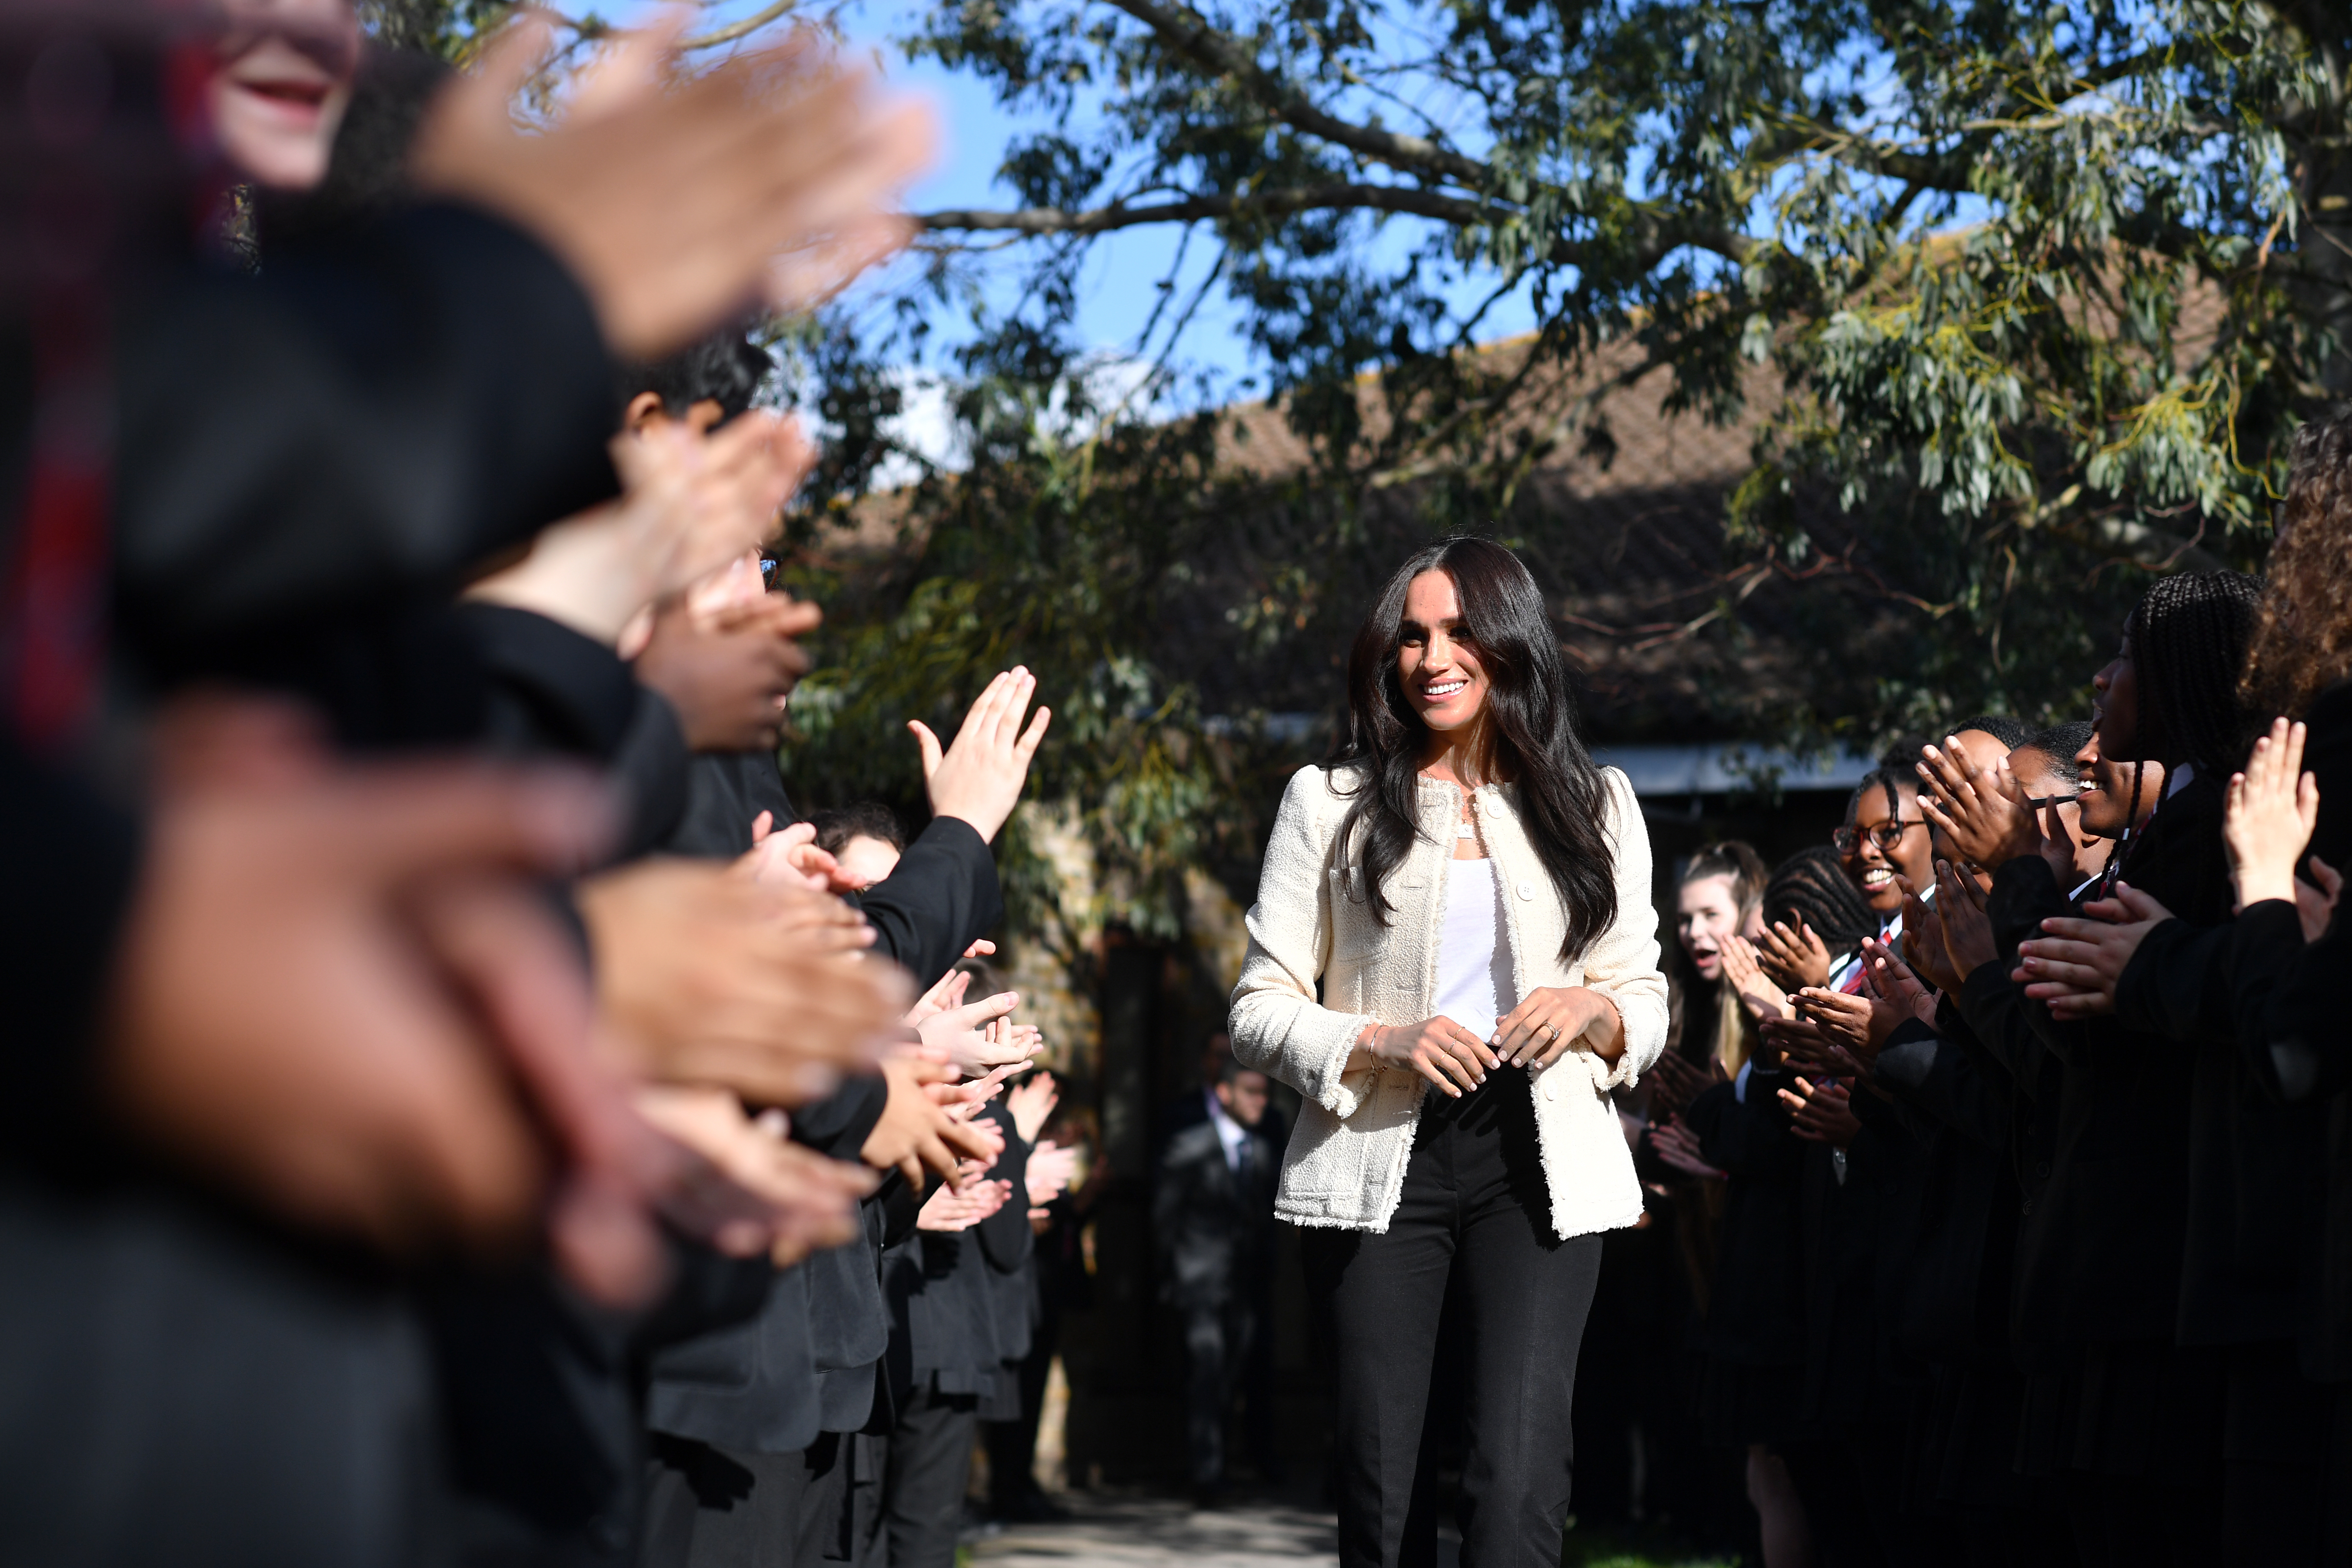 The Duchess of Sussex is greeted by pupils at the Robert Clack Upper School in Dagenham, Essex, during a surprise visit to celebrate International Women's Day.